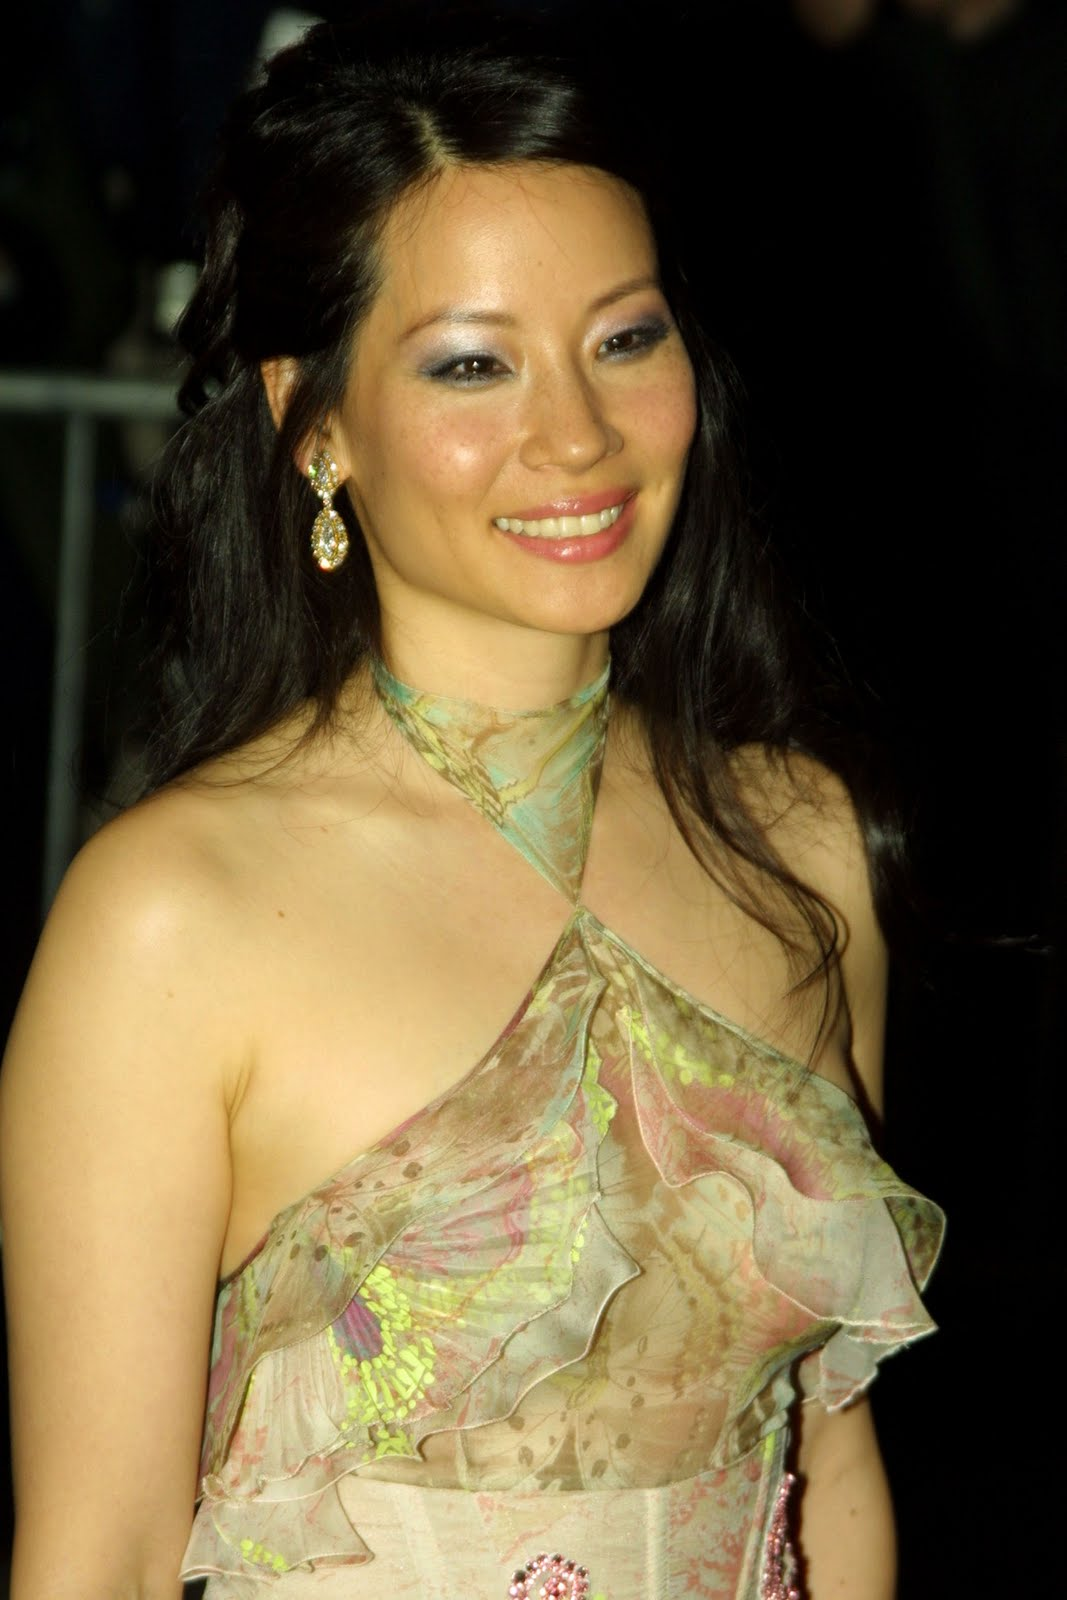 image Celeb lucy liu as sexy as it gets